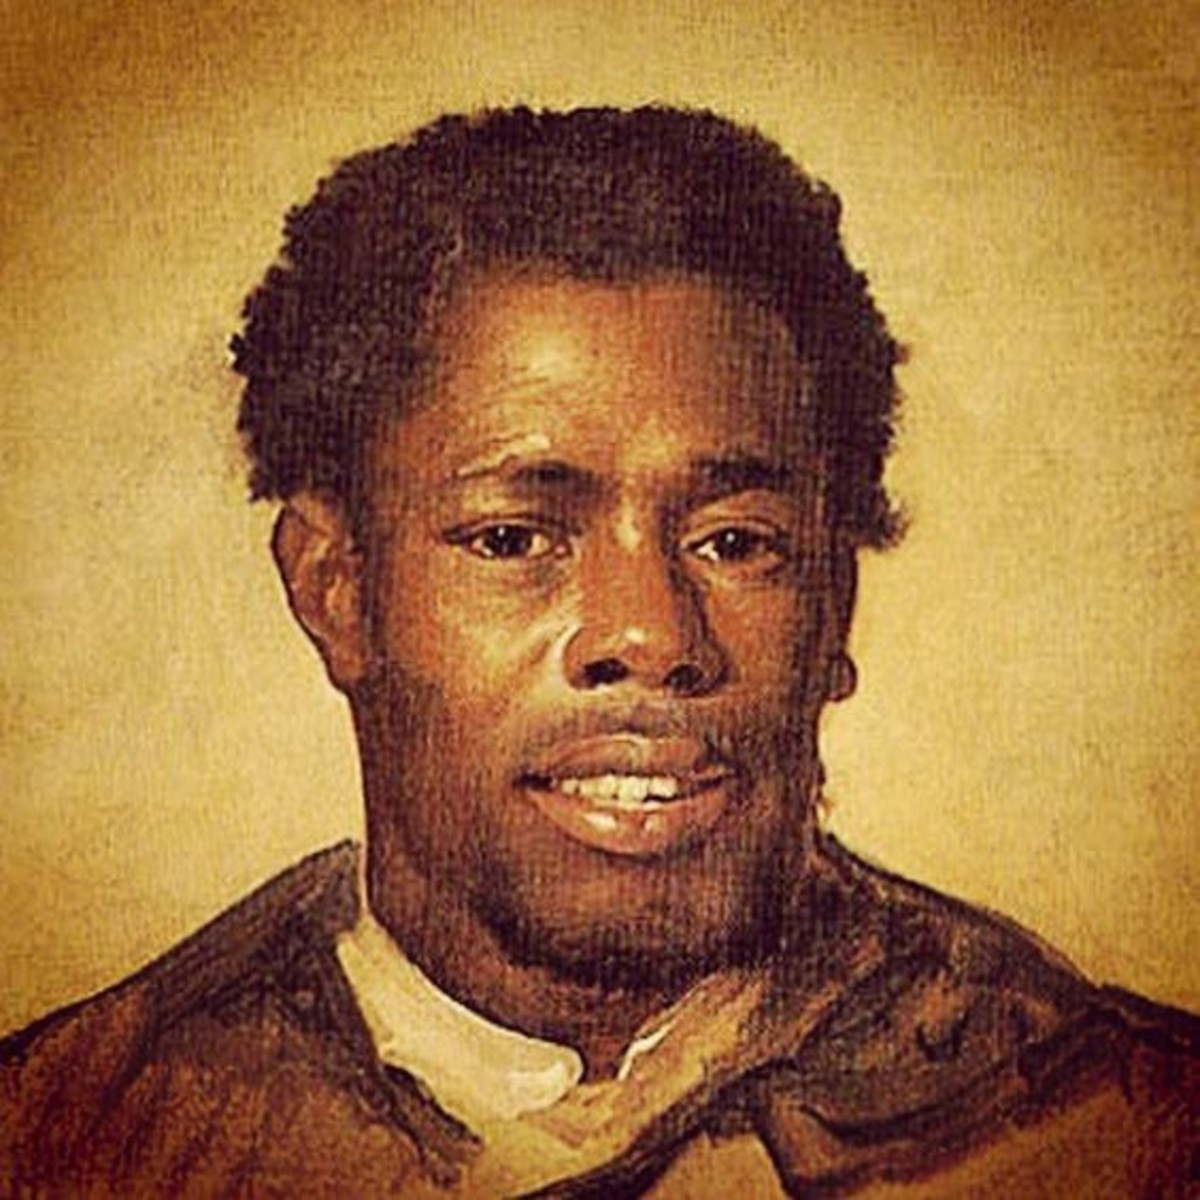 Depiction of Nat Turner